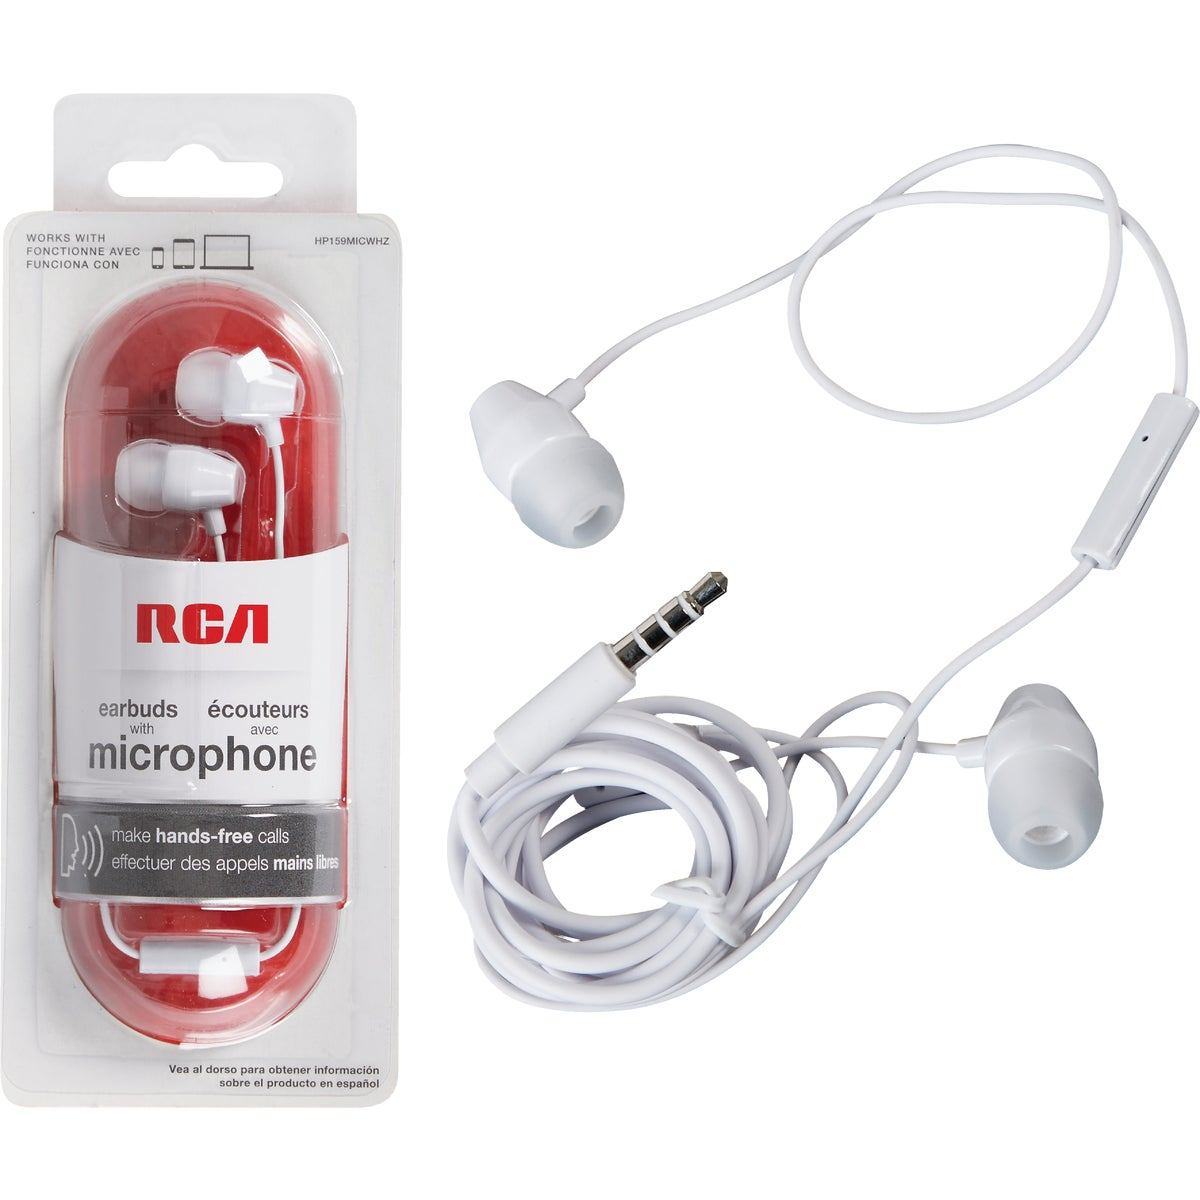 WHITE MICROPHONE/EARBUD - HP159MICWH by Audiovox Accessories